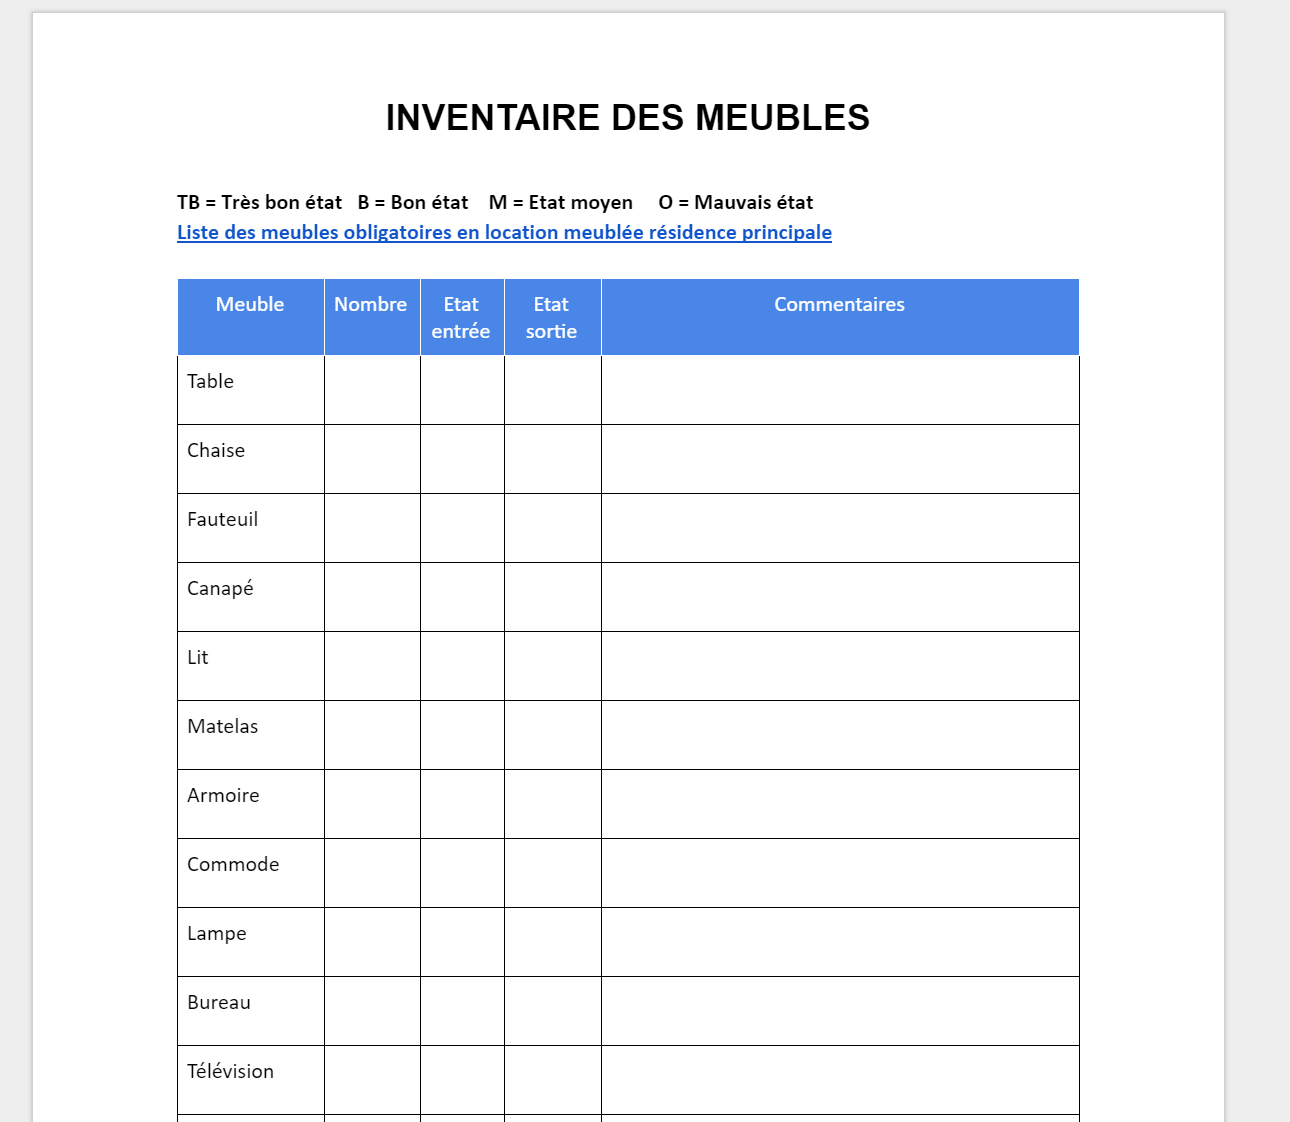 FireShot Capture 64 - Inventaire des meubles - Google Docs_ - https___docs.google.com_document_d